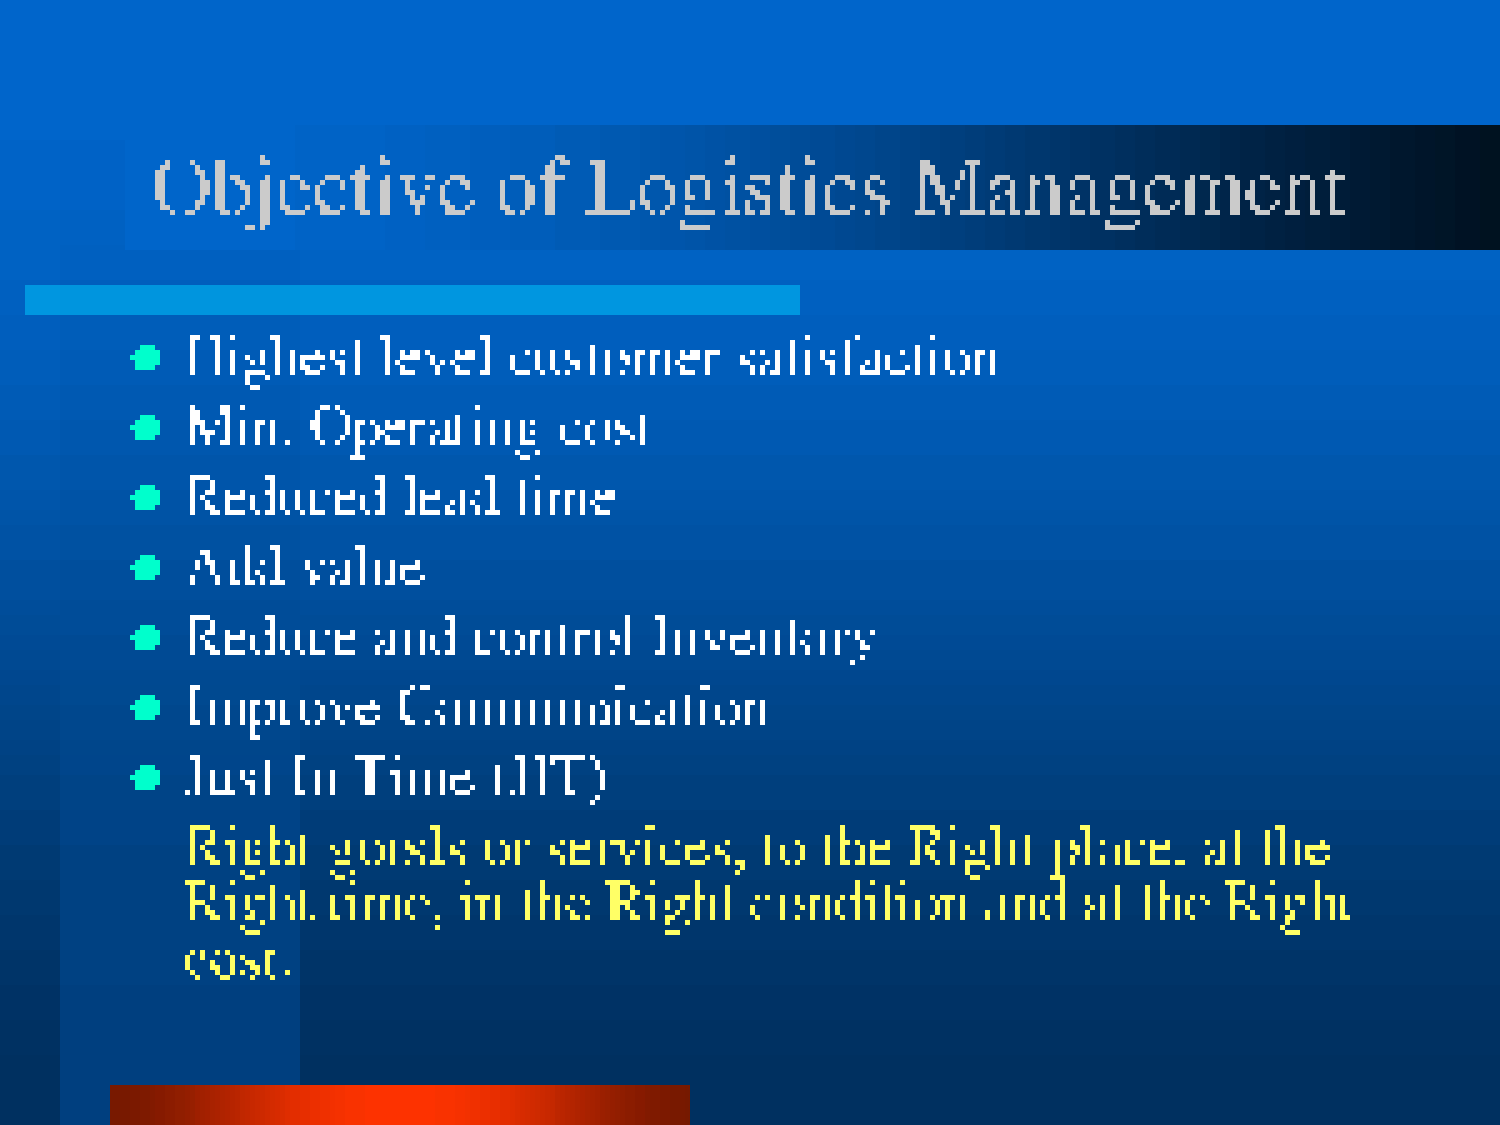 brand management lecture 1 + - product management concepts 2 lectures 10:46 this lecture provides an overview how a product progresses through a sequence of stages from introduction to growth, maturity, and 3 lectures 18:03 in this lecture, you will learn: why good brands are more than a logo and trademark.